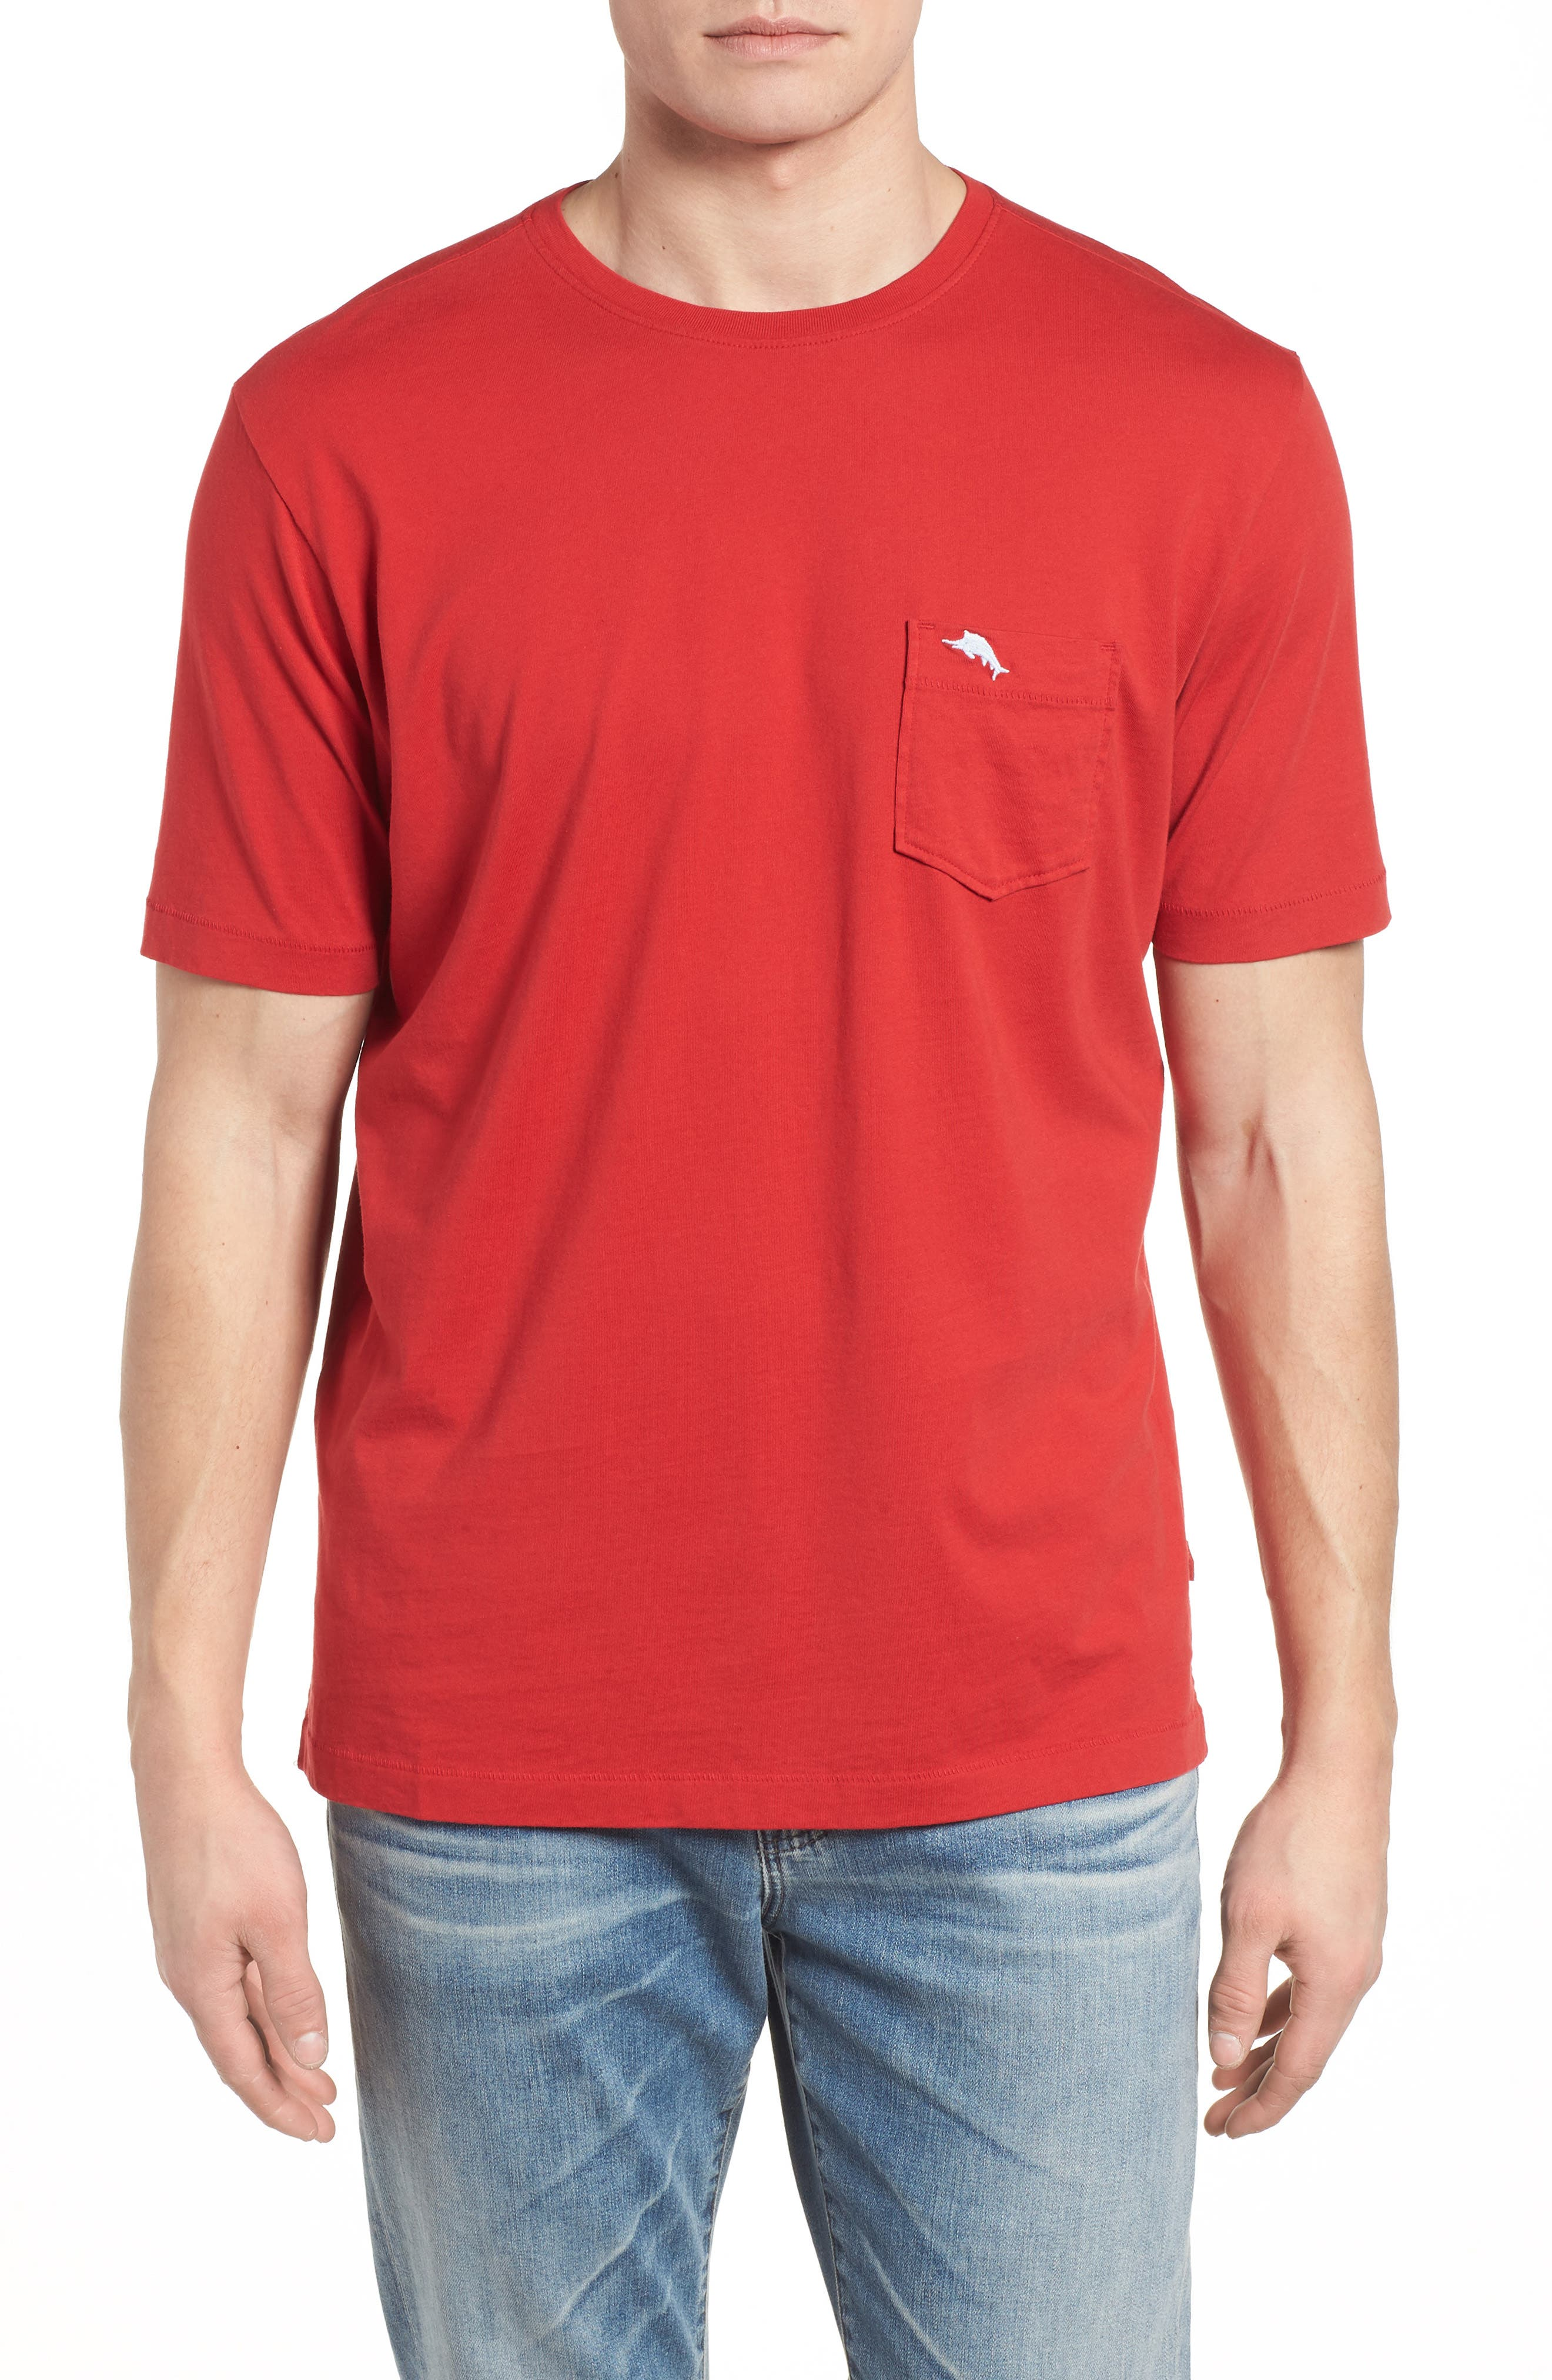 'New Bali Sky' Original Fit Crewneck Pocket T-Shirt,                             Main thumbnail 1, color,                             Regal Red